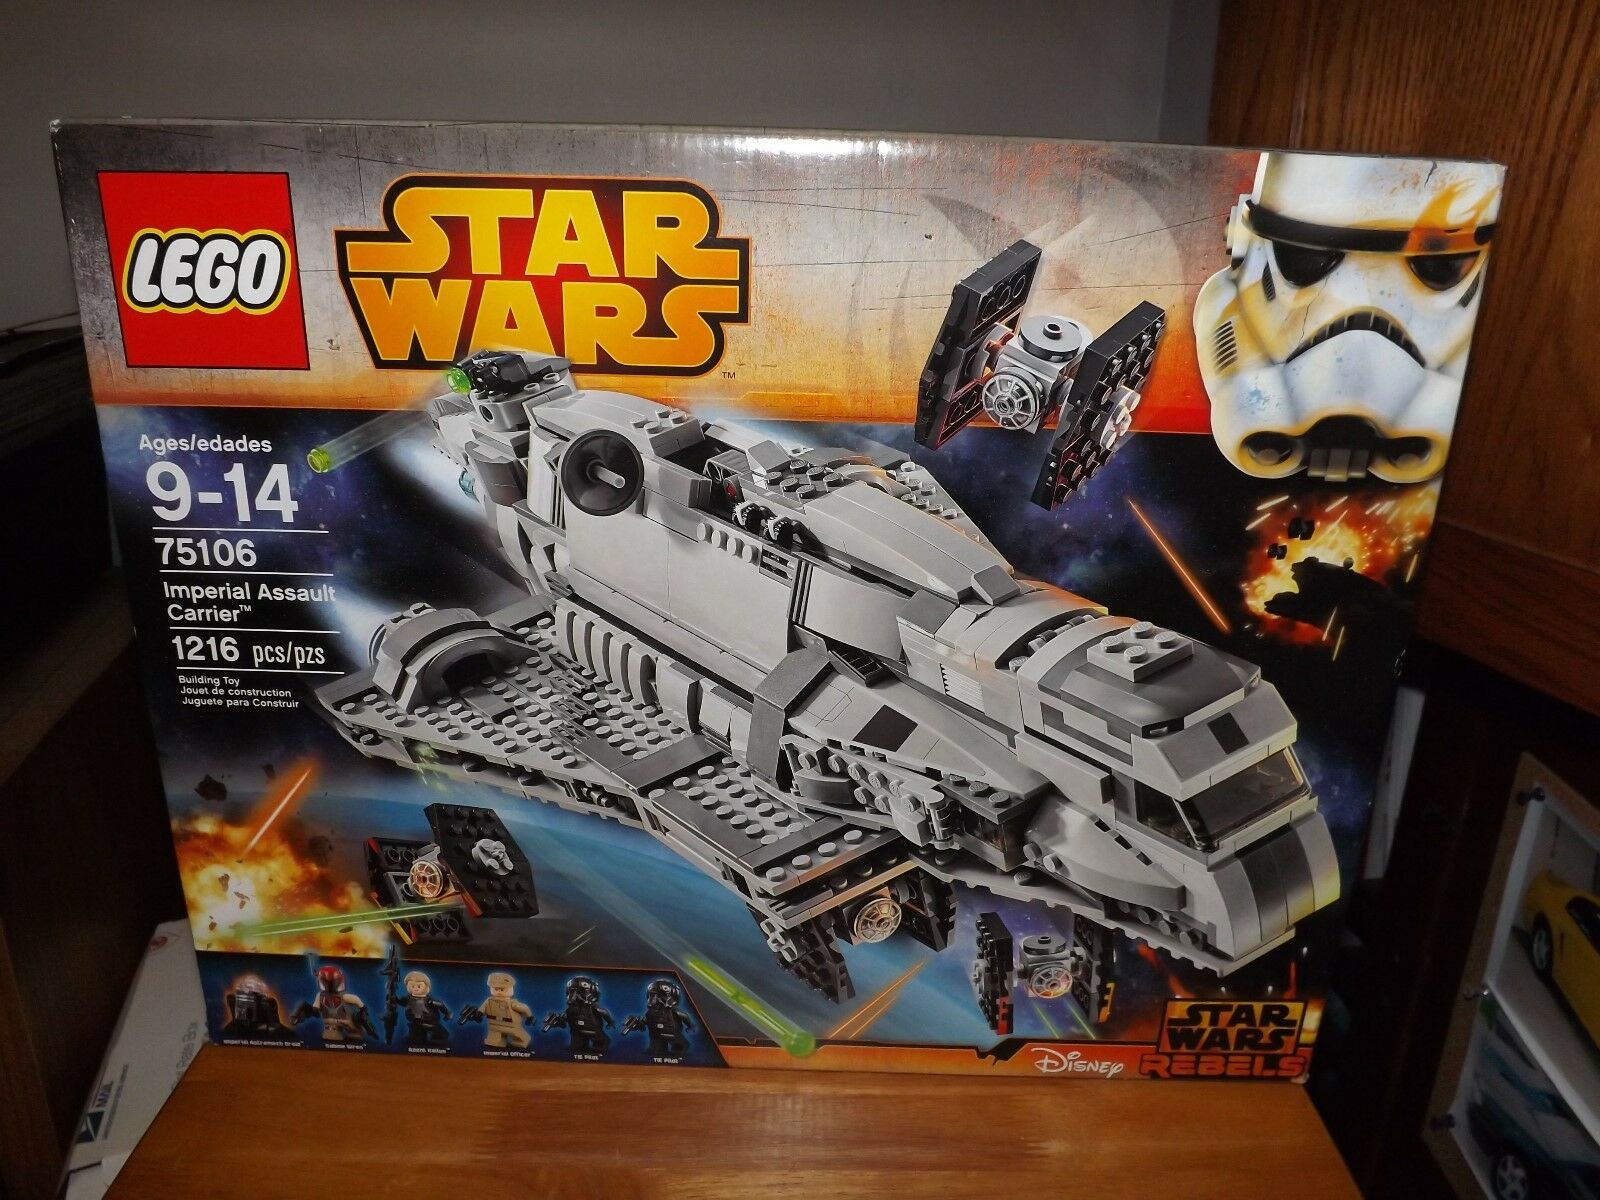 LEGO, STAR WARS REBELS, IMPERIAL ASSAULT CARRIER, KIT  75106, 1216 PCS, NIB 2015